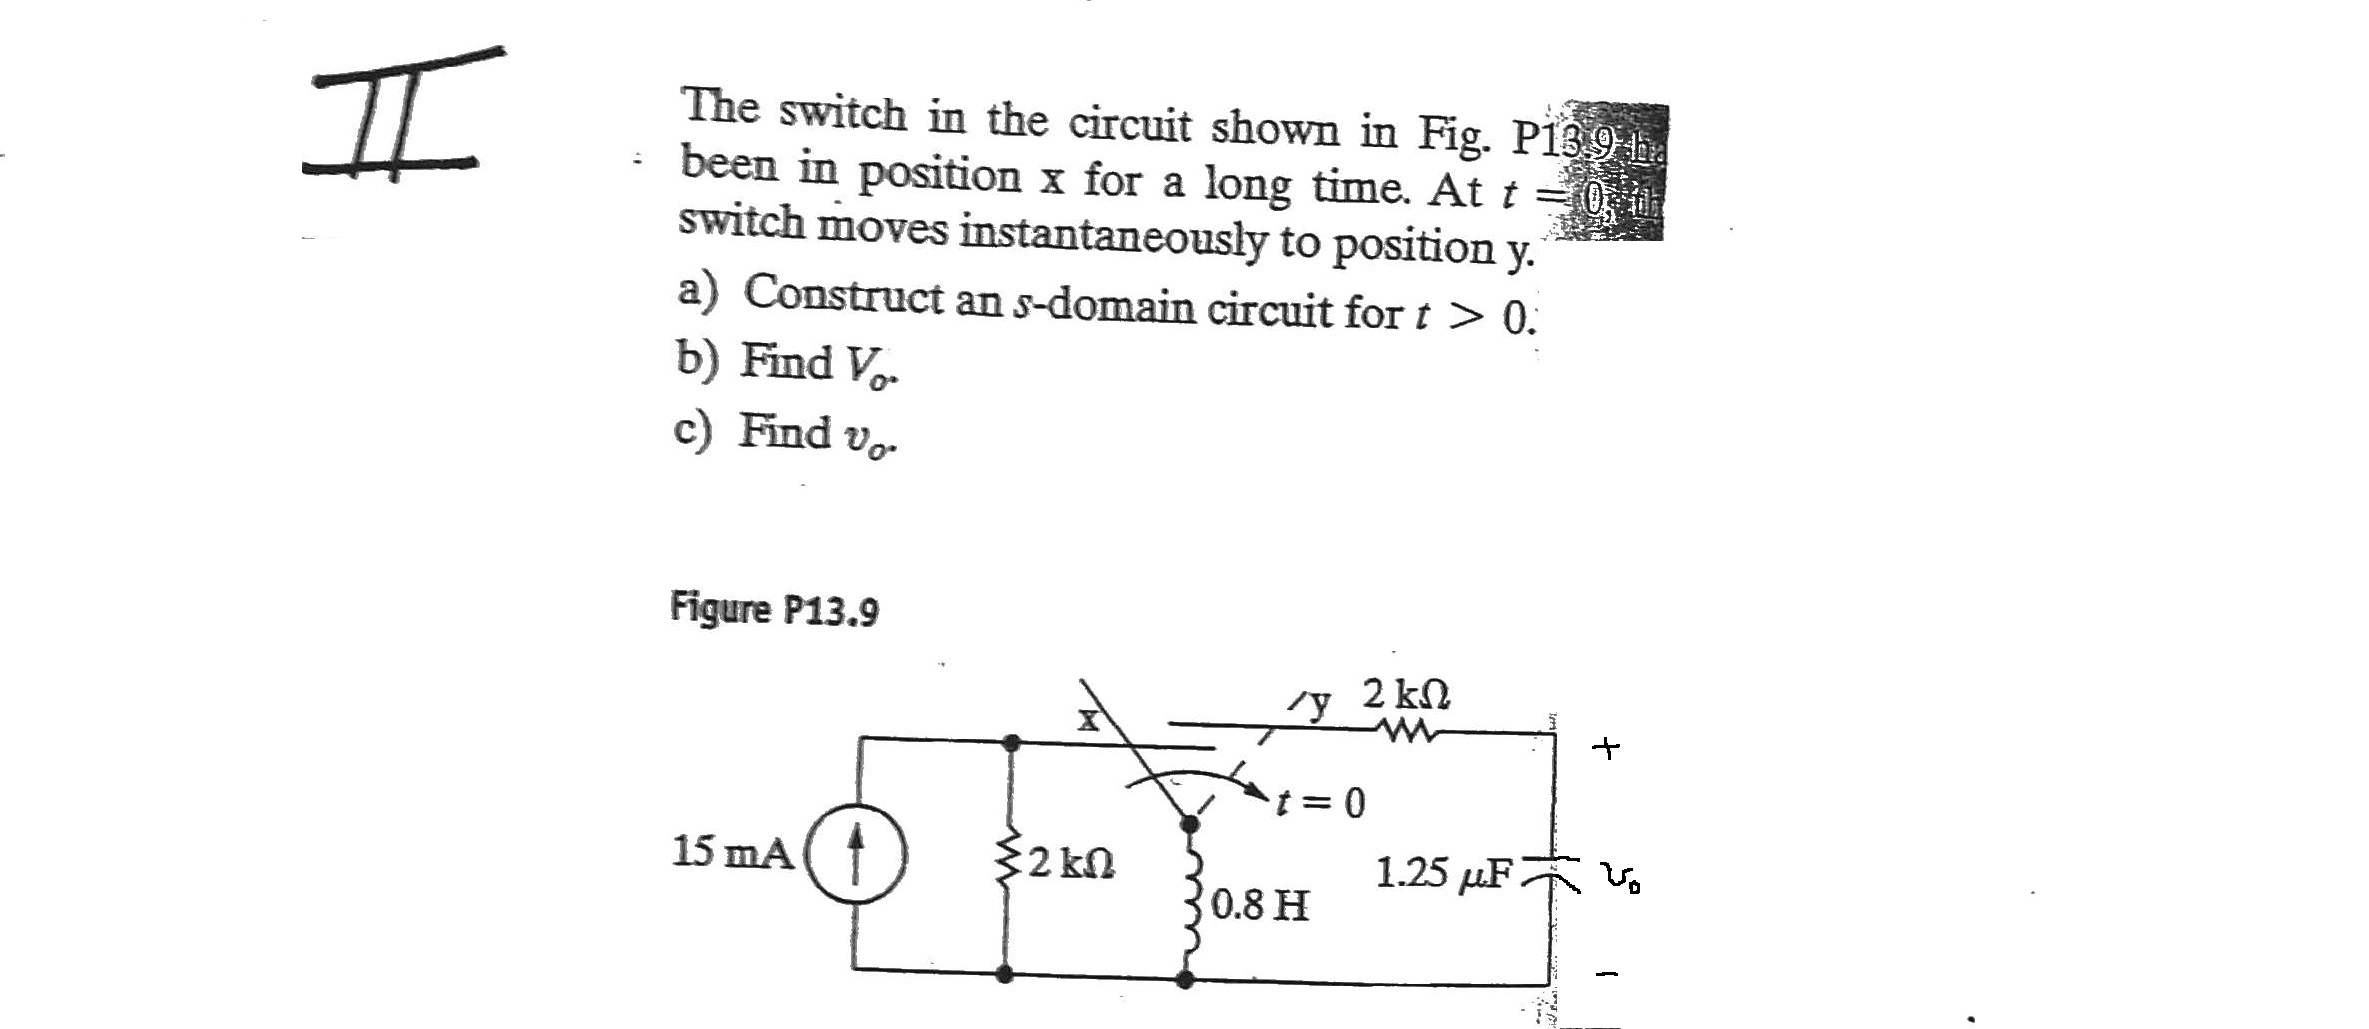 The switch in the circuit shown in Fig. P139 been